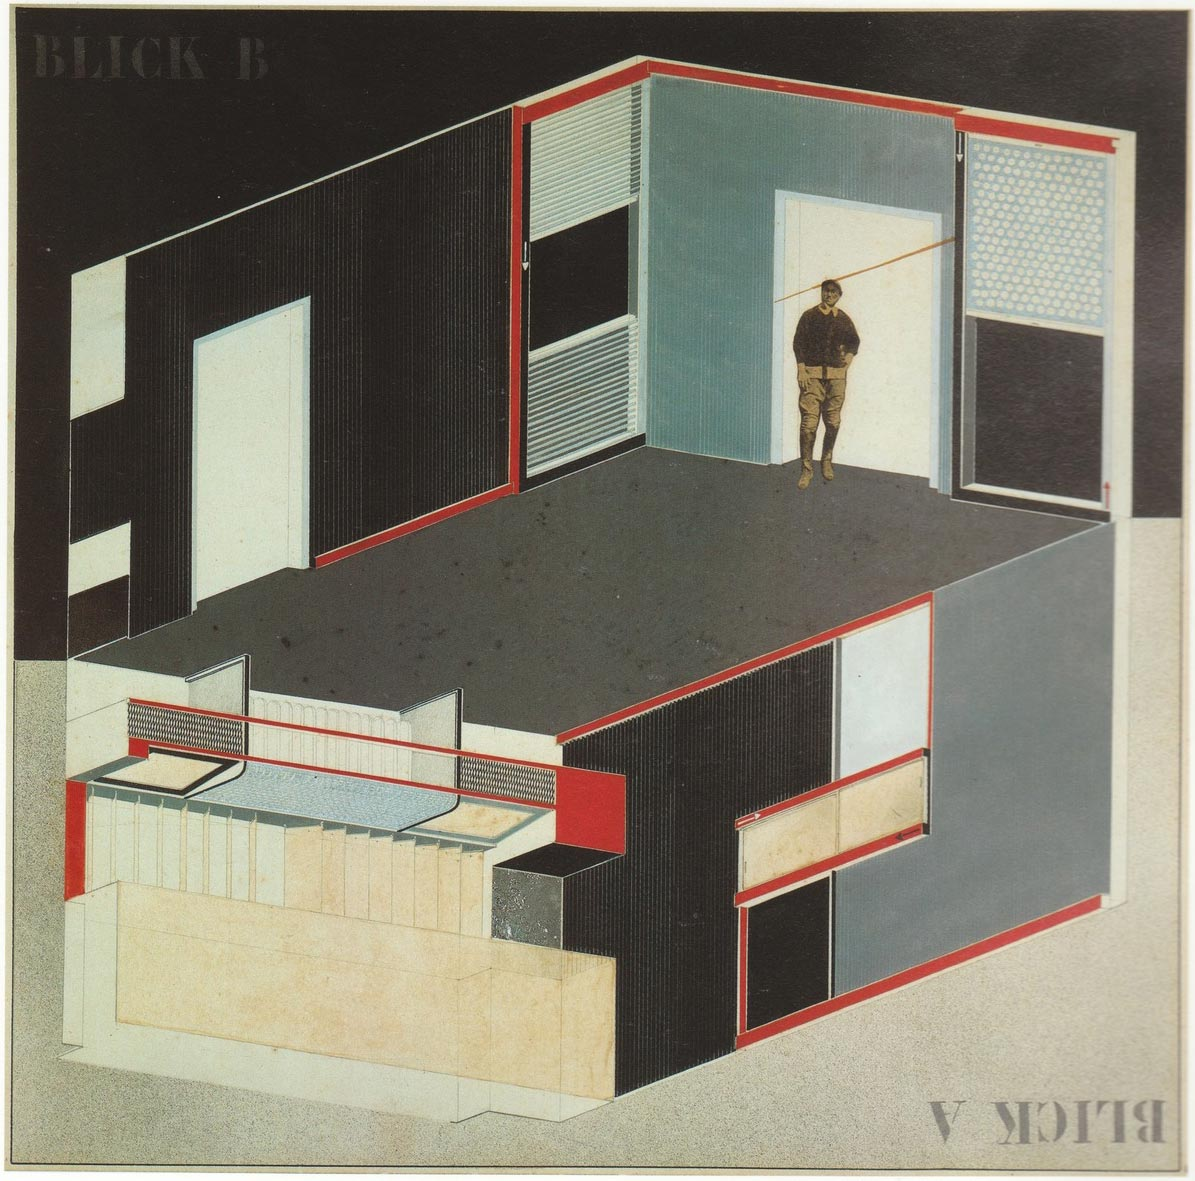 El Lissitzky, Cabinet-of abstraction, Commisioned by Alexander Dorner for Hannover Provincial Museum, 1927